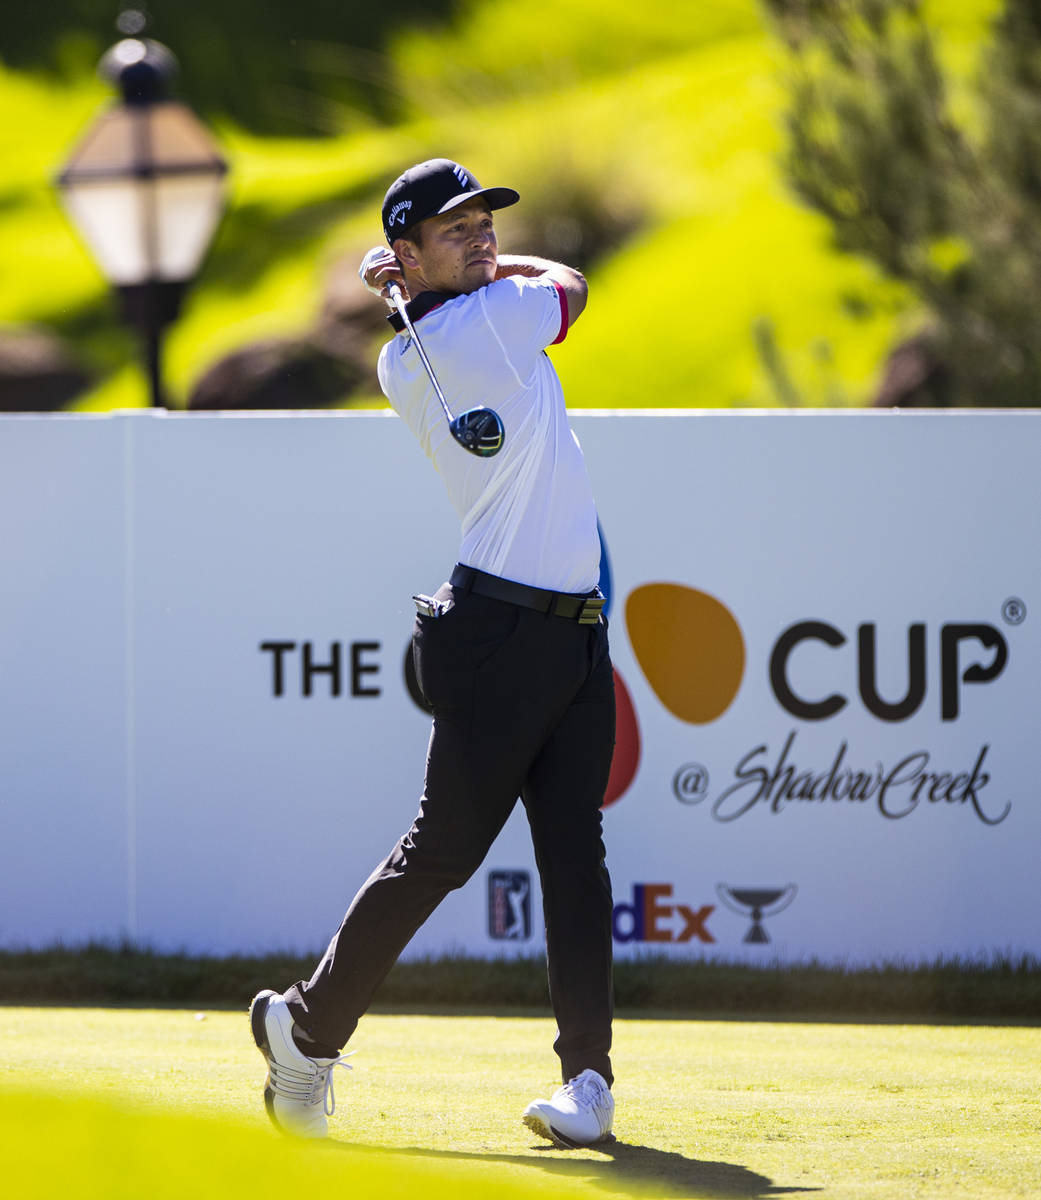 Xander Schauffele tees off at the first hole during the second round of the CJ Cup at the Shado ...